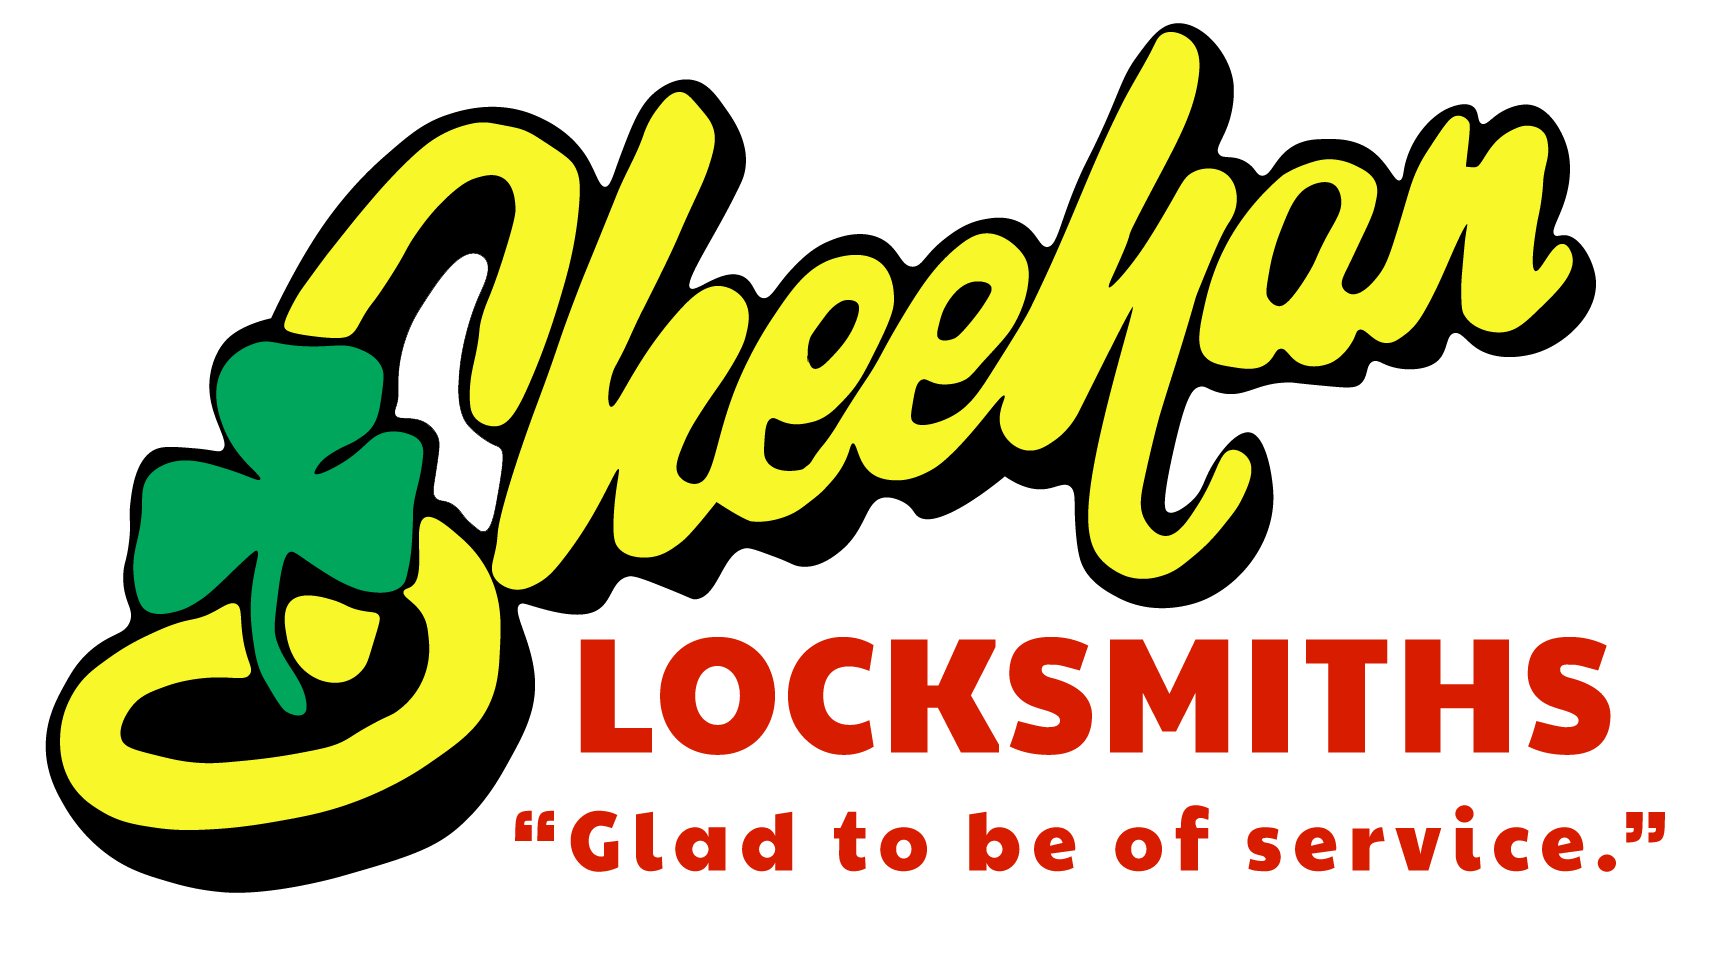 Sheehan Locksmiths